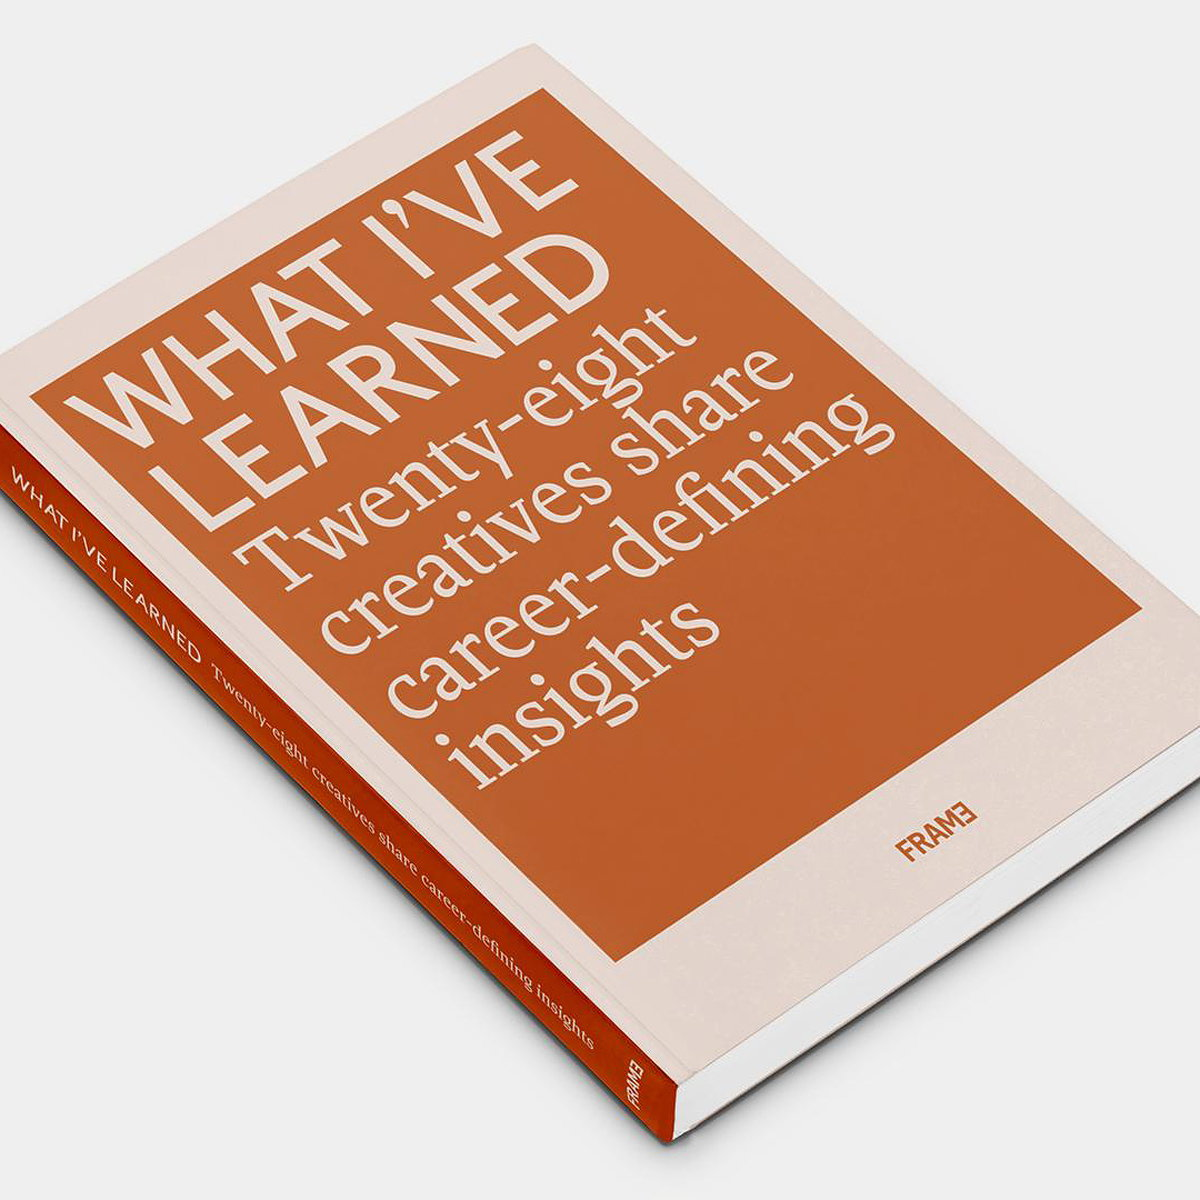 What I've Learned - 28 Creatives Share Career-defining Insights